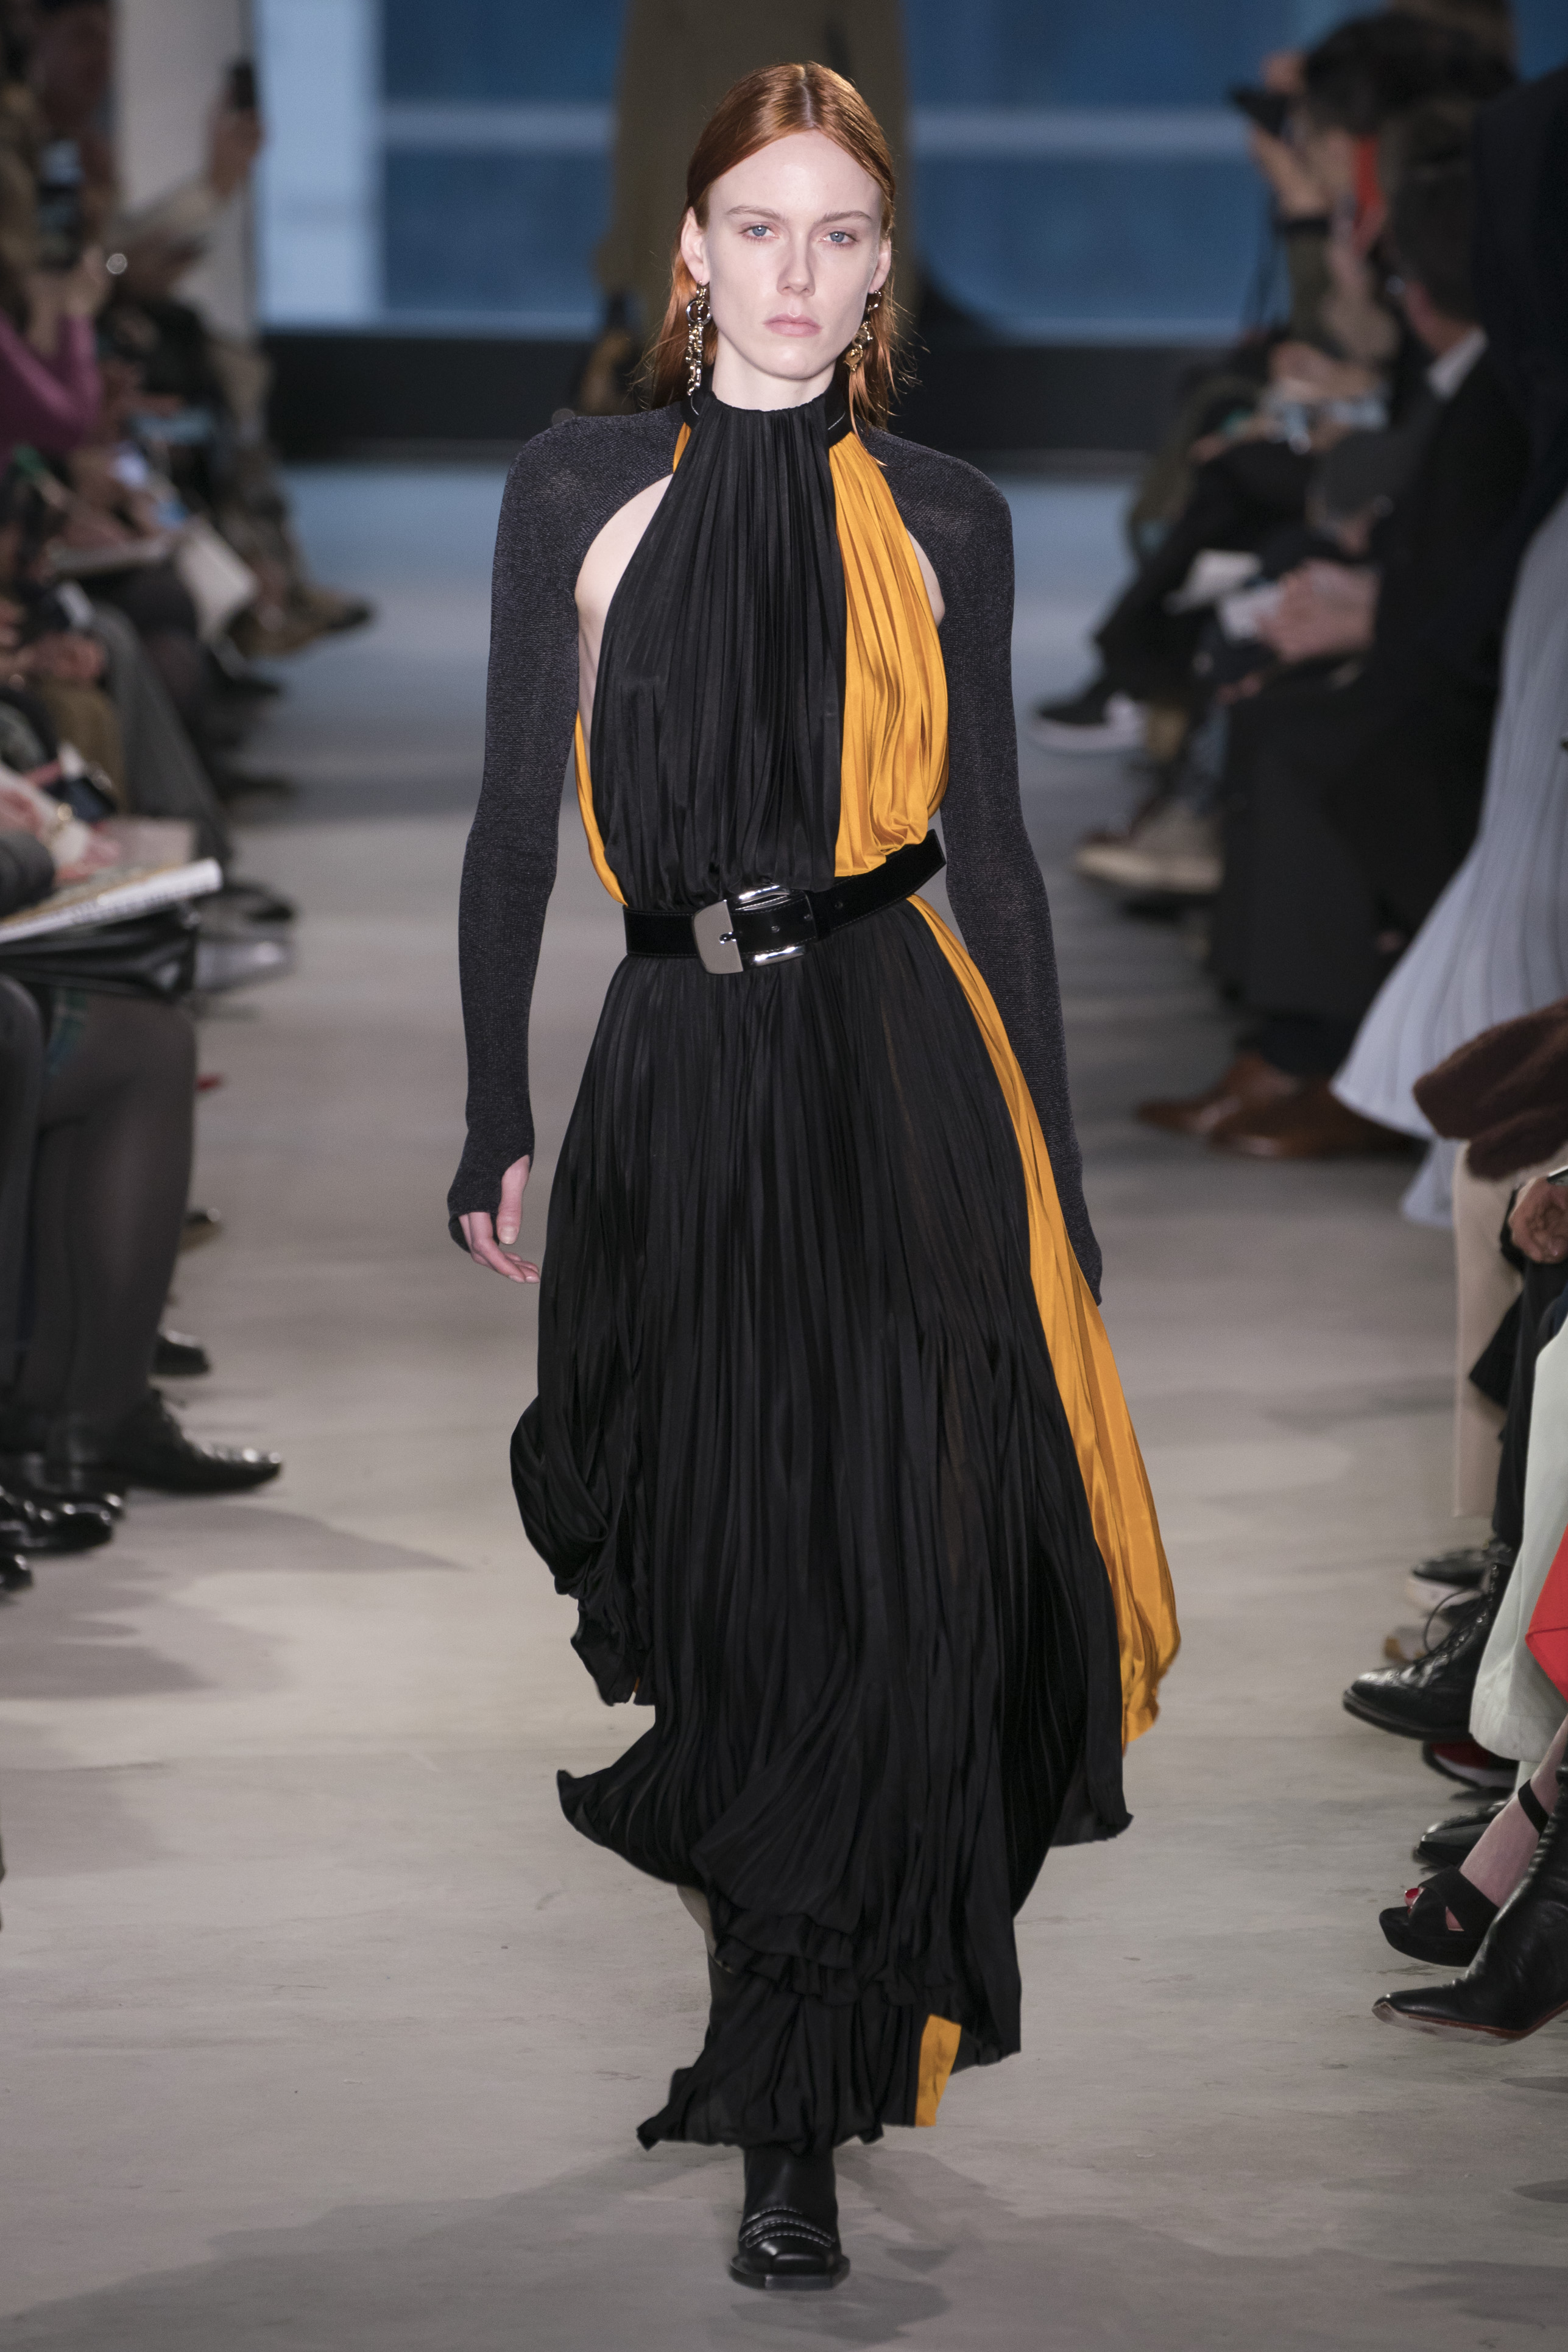 Proenza Schouler Fall/Winter 2019